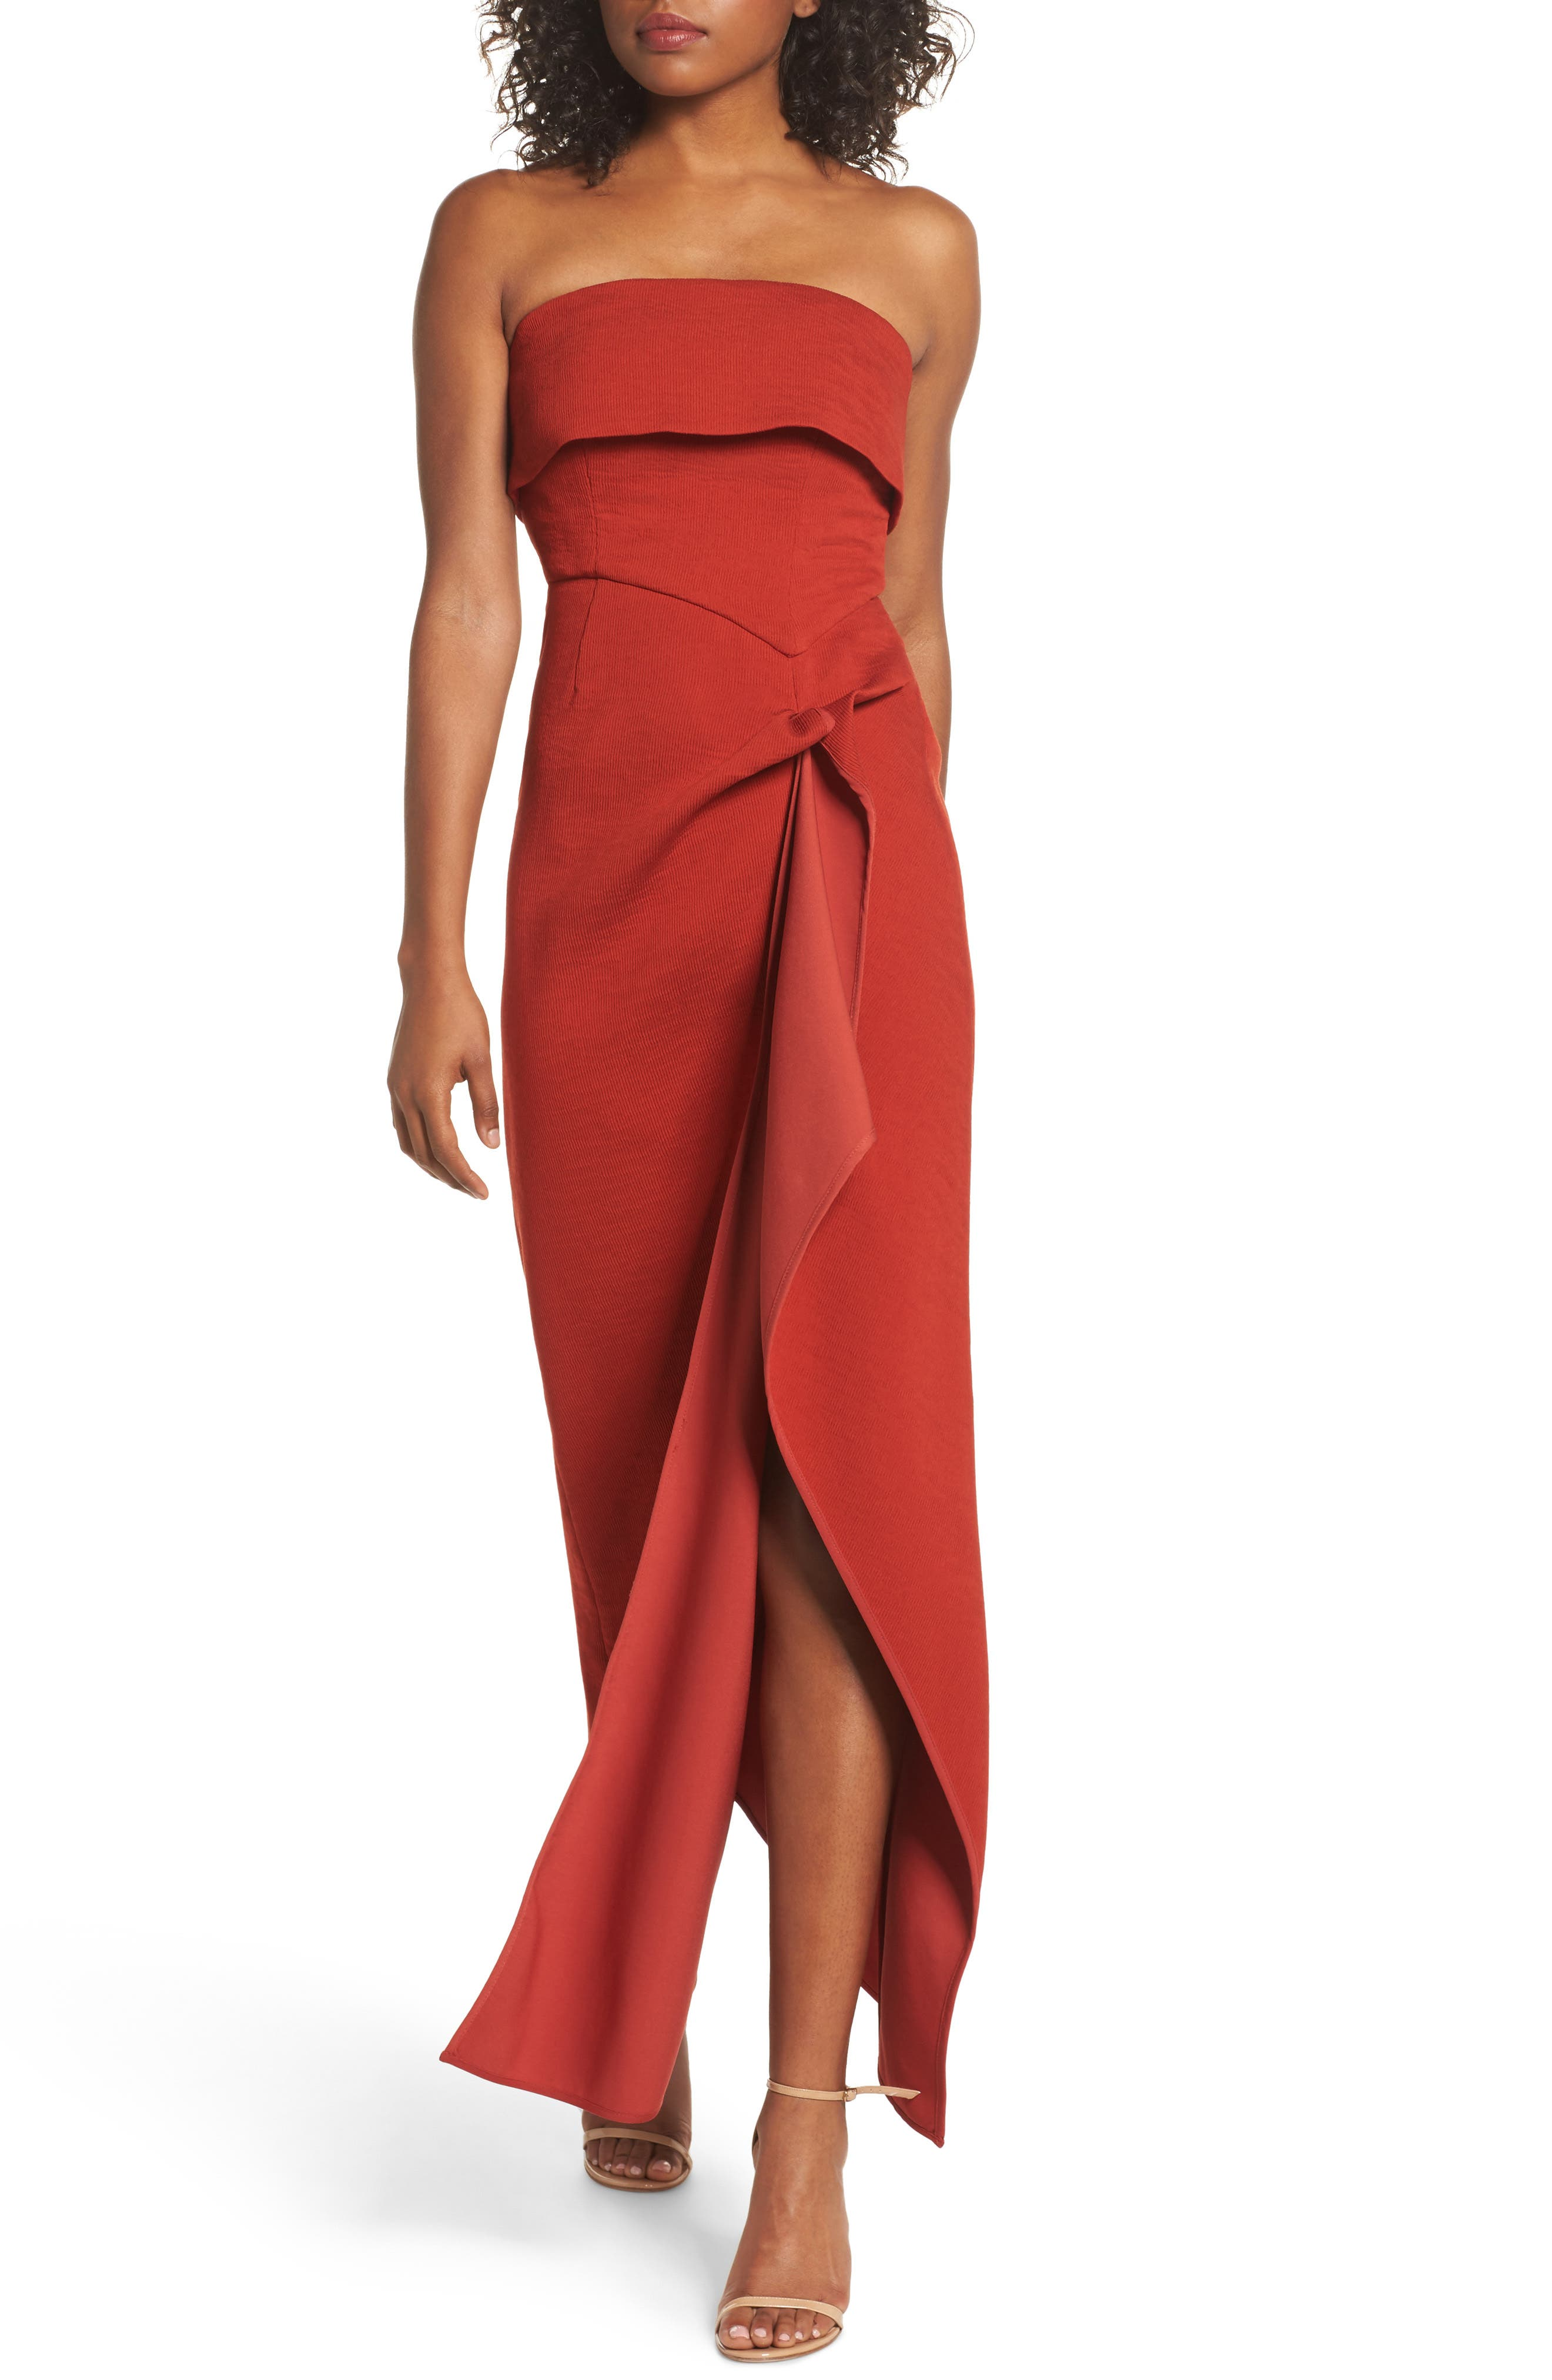 Fluidity Strapless Maxi Dress,                         Main,                         color, 602